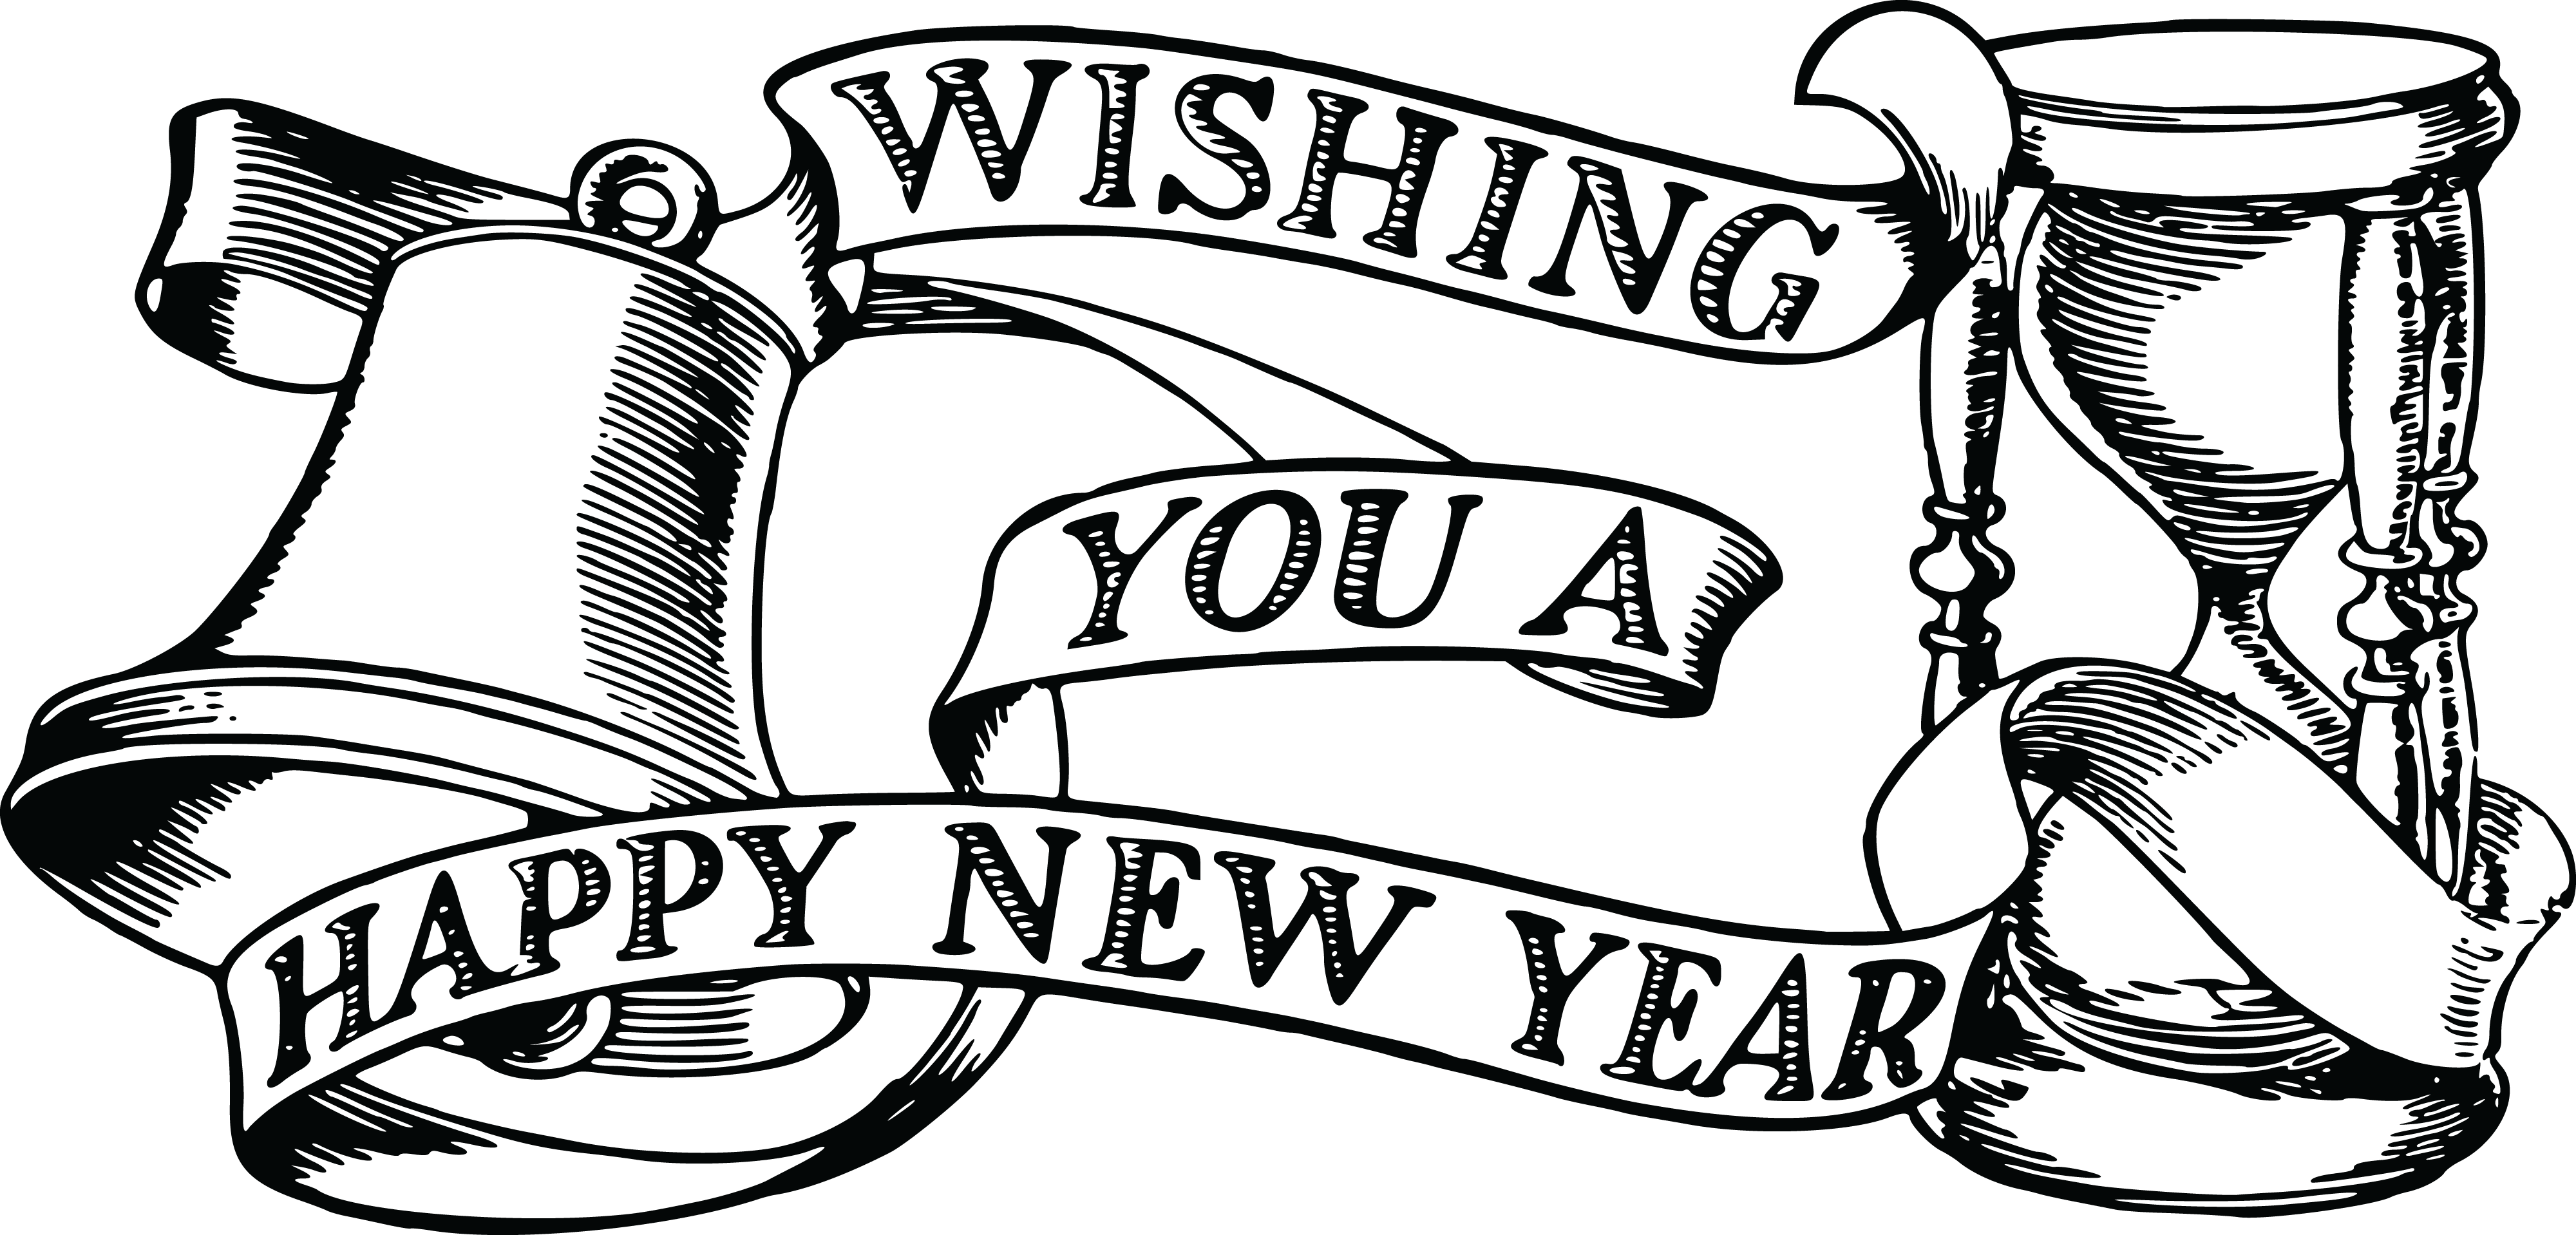 Happy new year clipart no background free graphic free download Download Free Clipart Of A Bell Hourglass And Happy New Year - Happy ... graphic free download